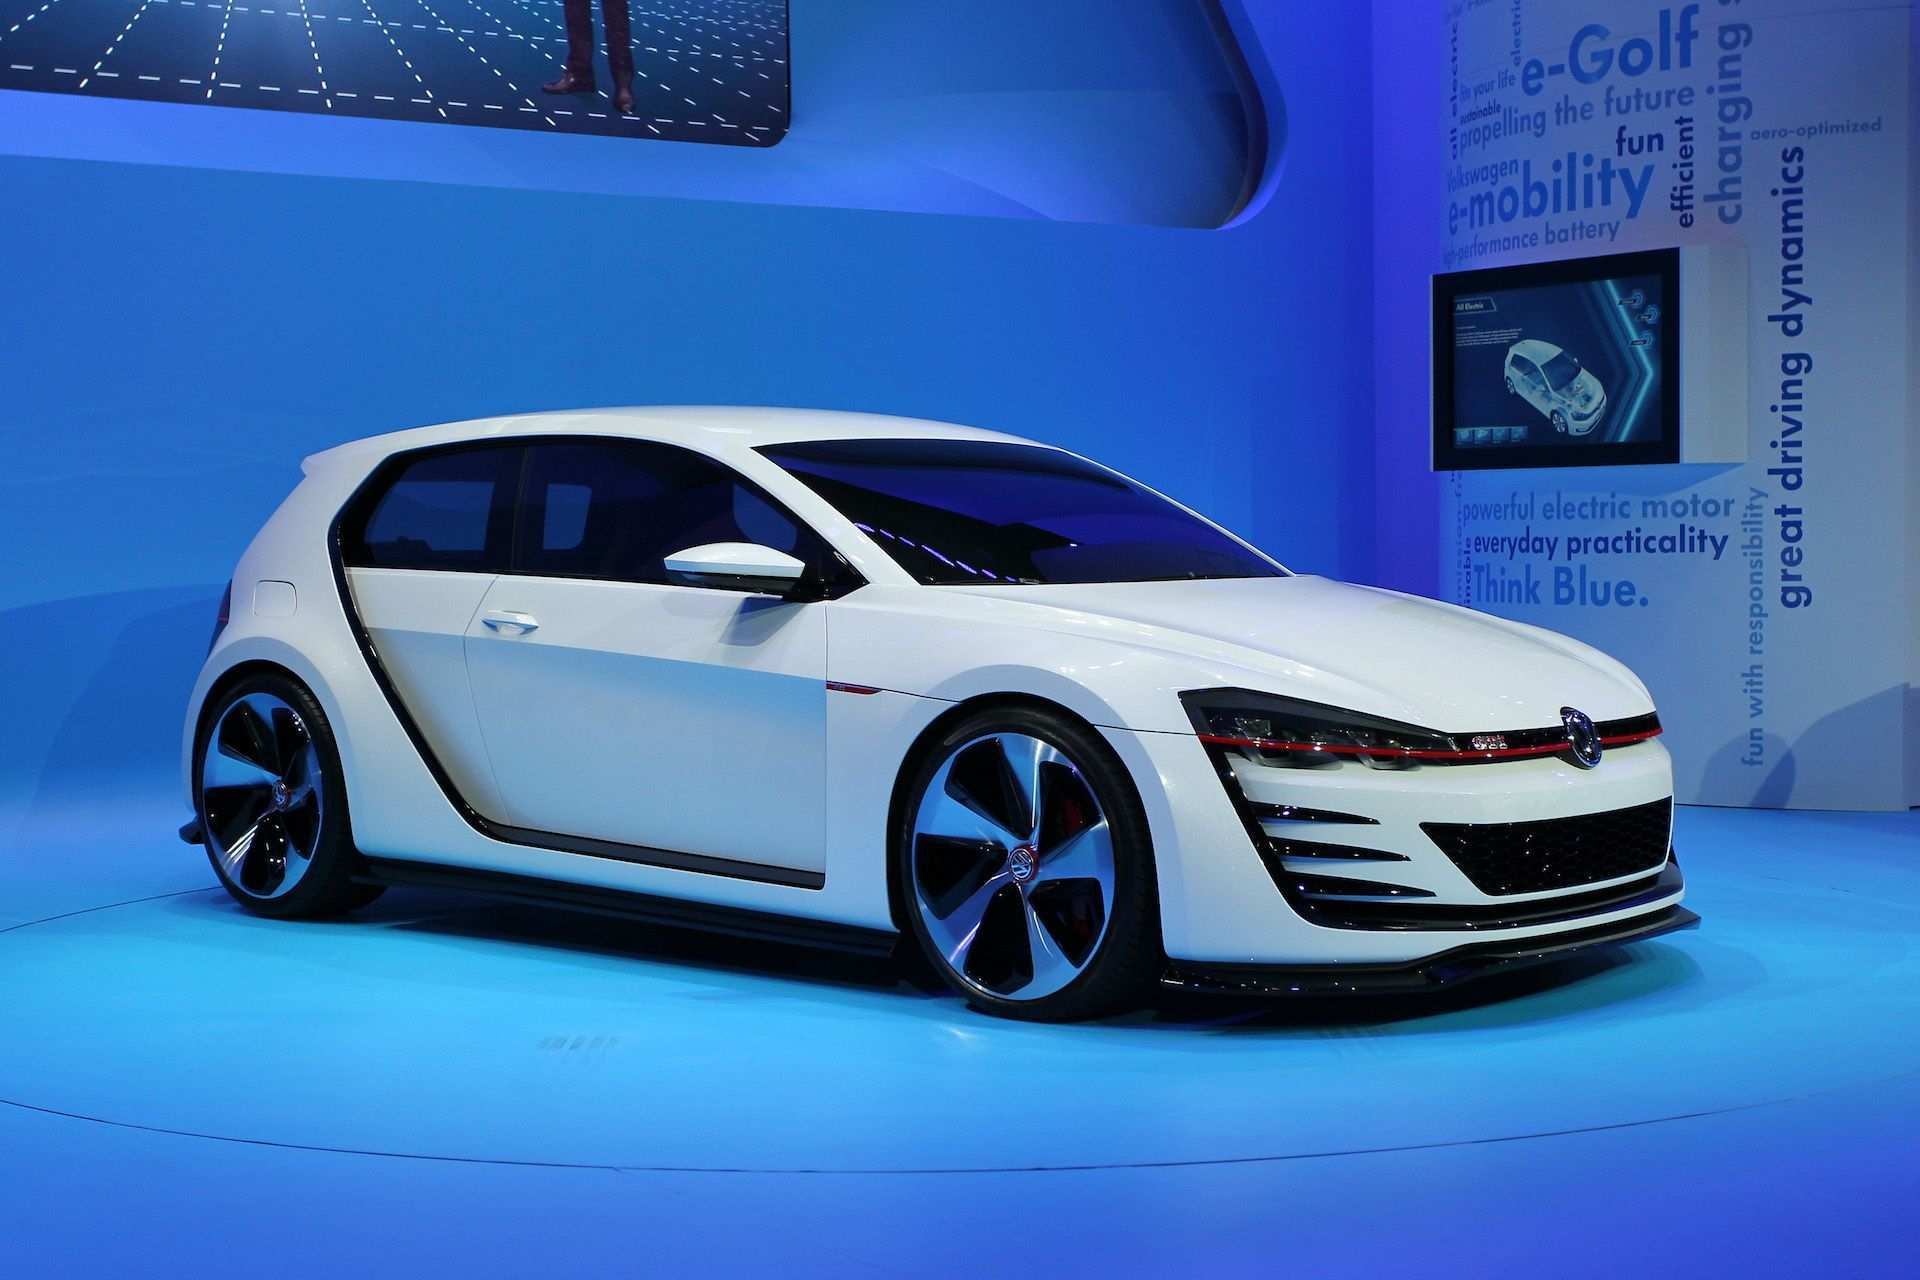 52 All New Volkswagen Golf Gti 2020 Exterior